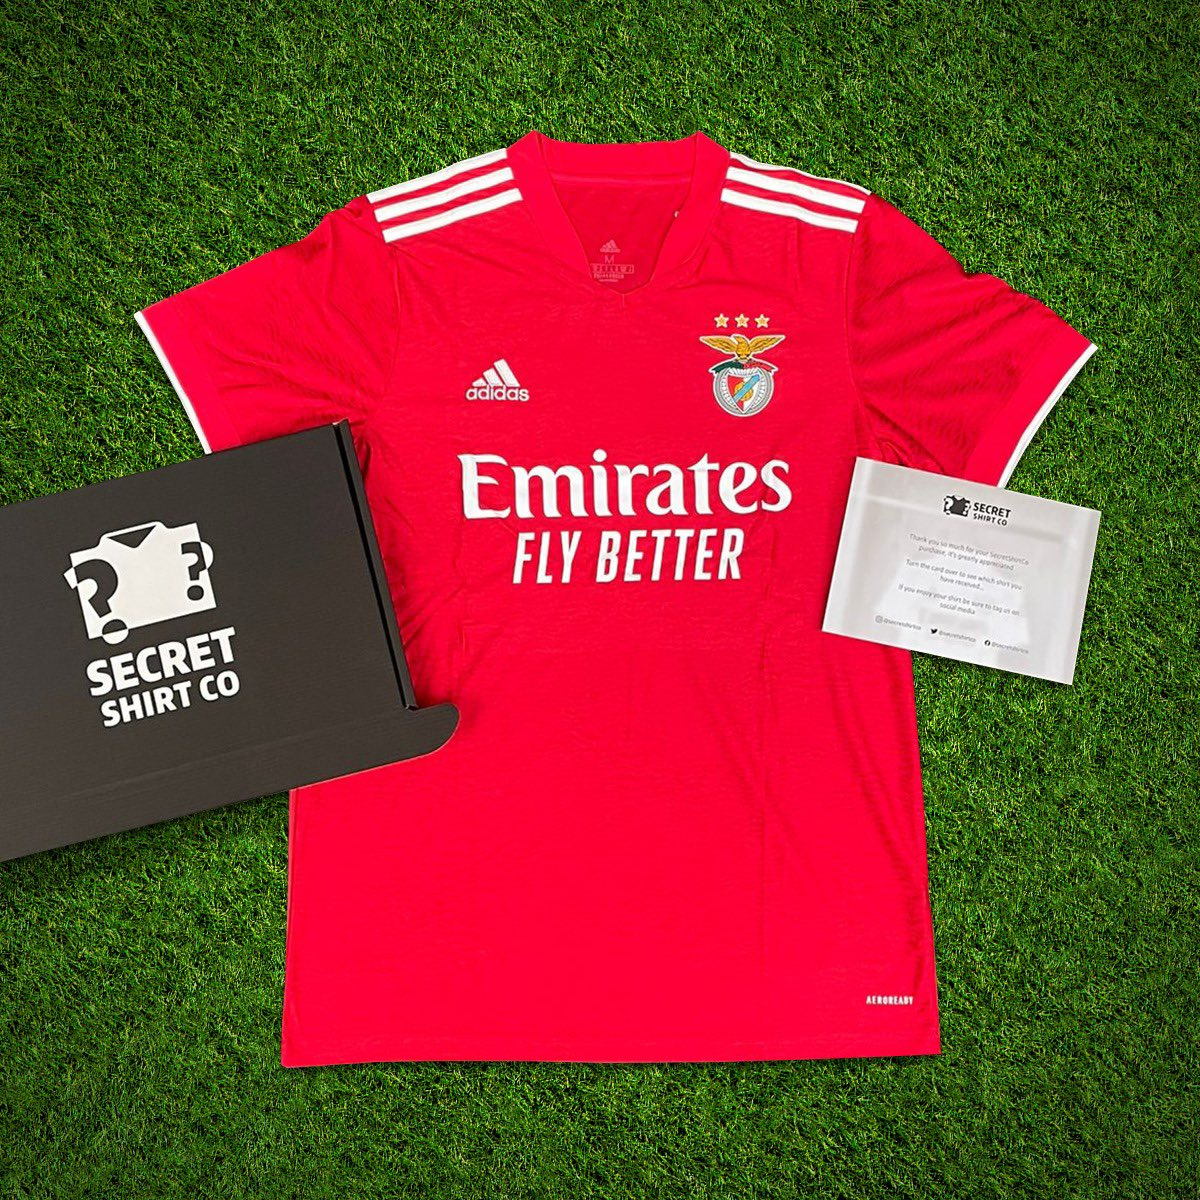 If Liverpool and Manchester City both win today we'll giveaway a SecretShirt.co box 📦 To enter 👇 🔄 Retweet this tweet 🤝 Follow us Good luck!